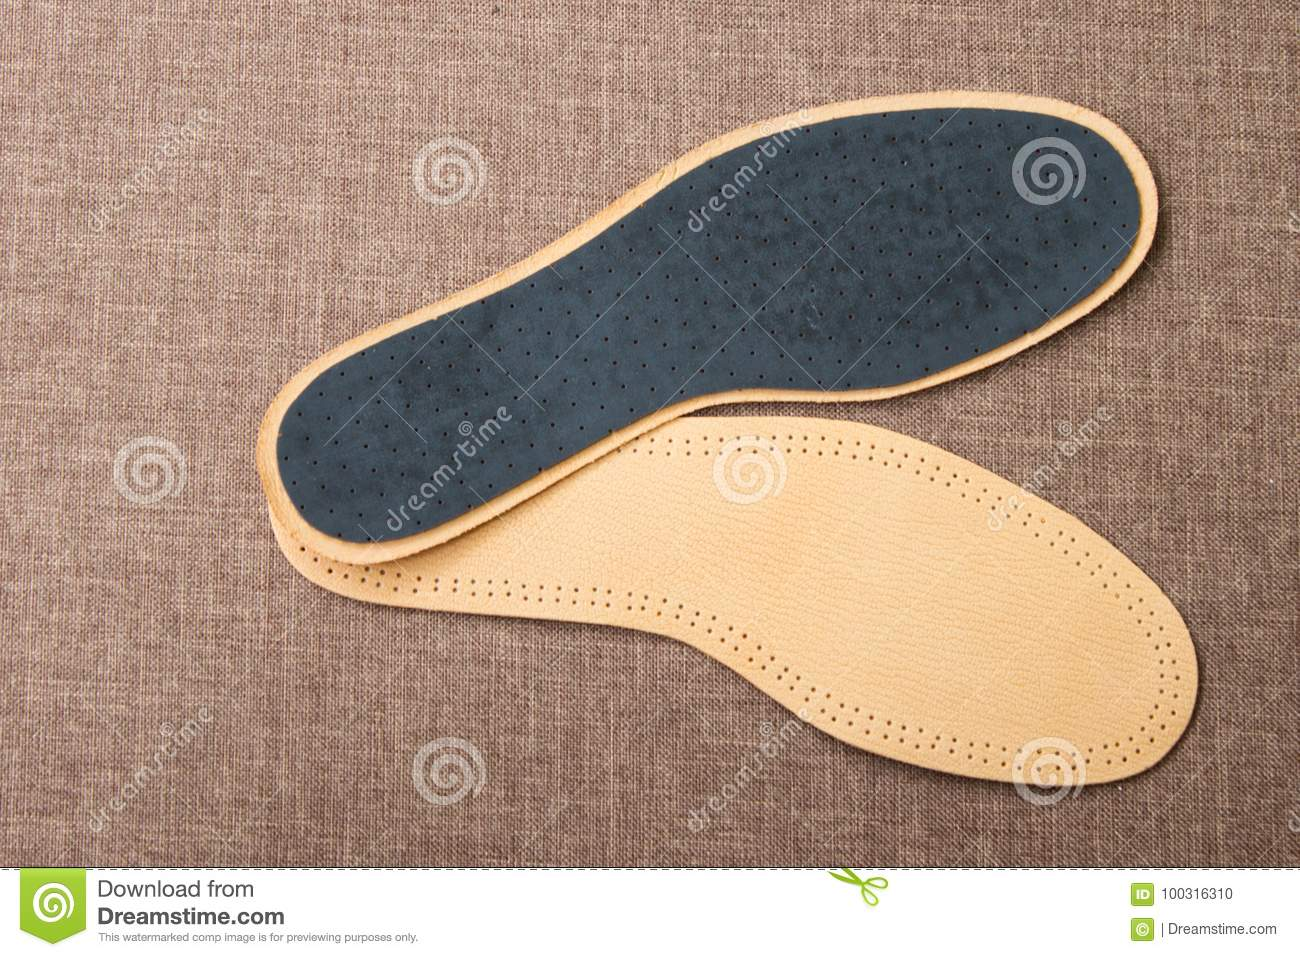 Leather Shoe Insoles For Sport Fitness Everyday Life Stock Photo